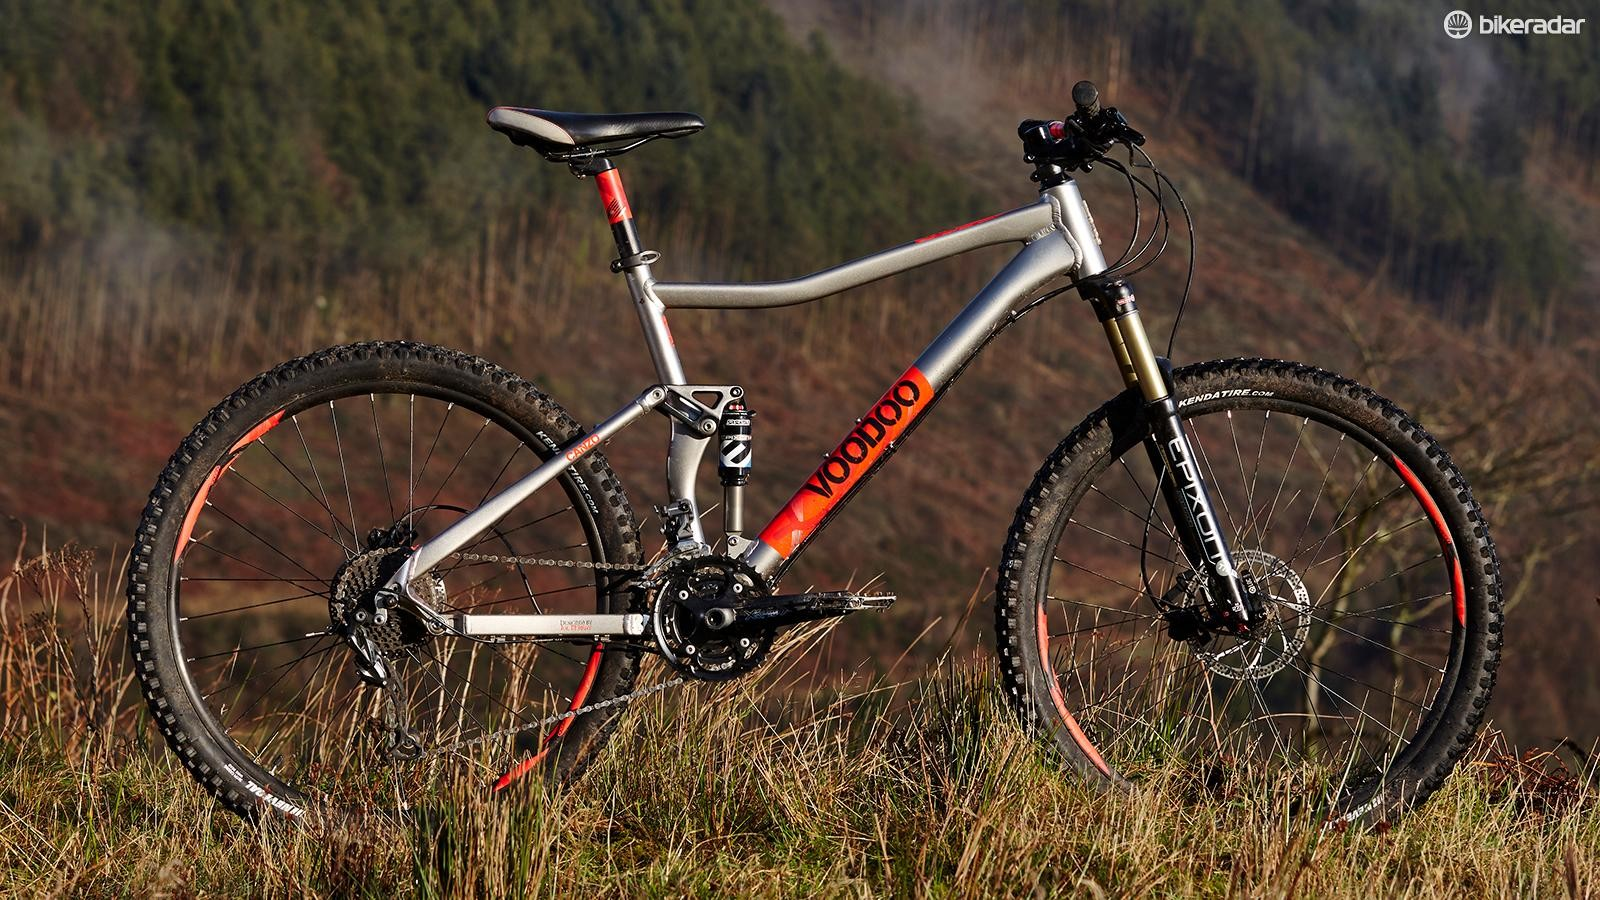 VooDoo's Canzo is a lot of bike for not a whole lot of cash